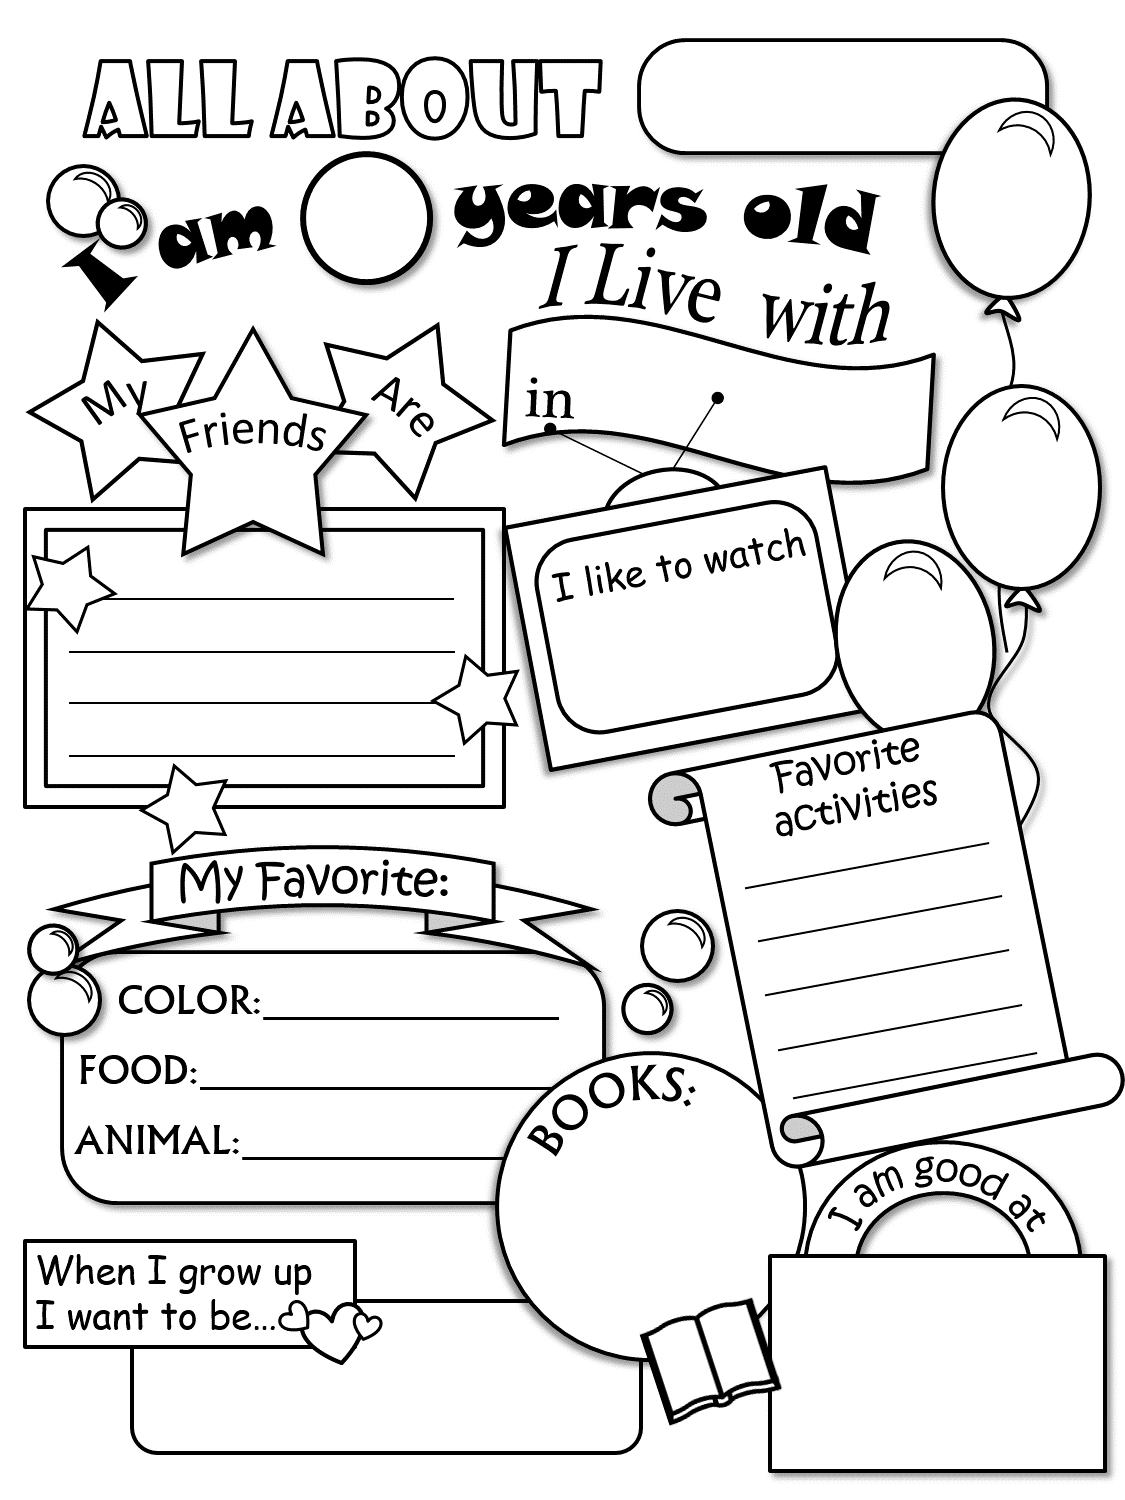 All About Me Worksheet This Would Be Cute For A Time Cap Or 1st Week Of School And Have A